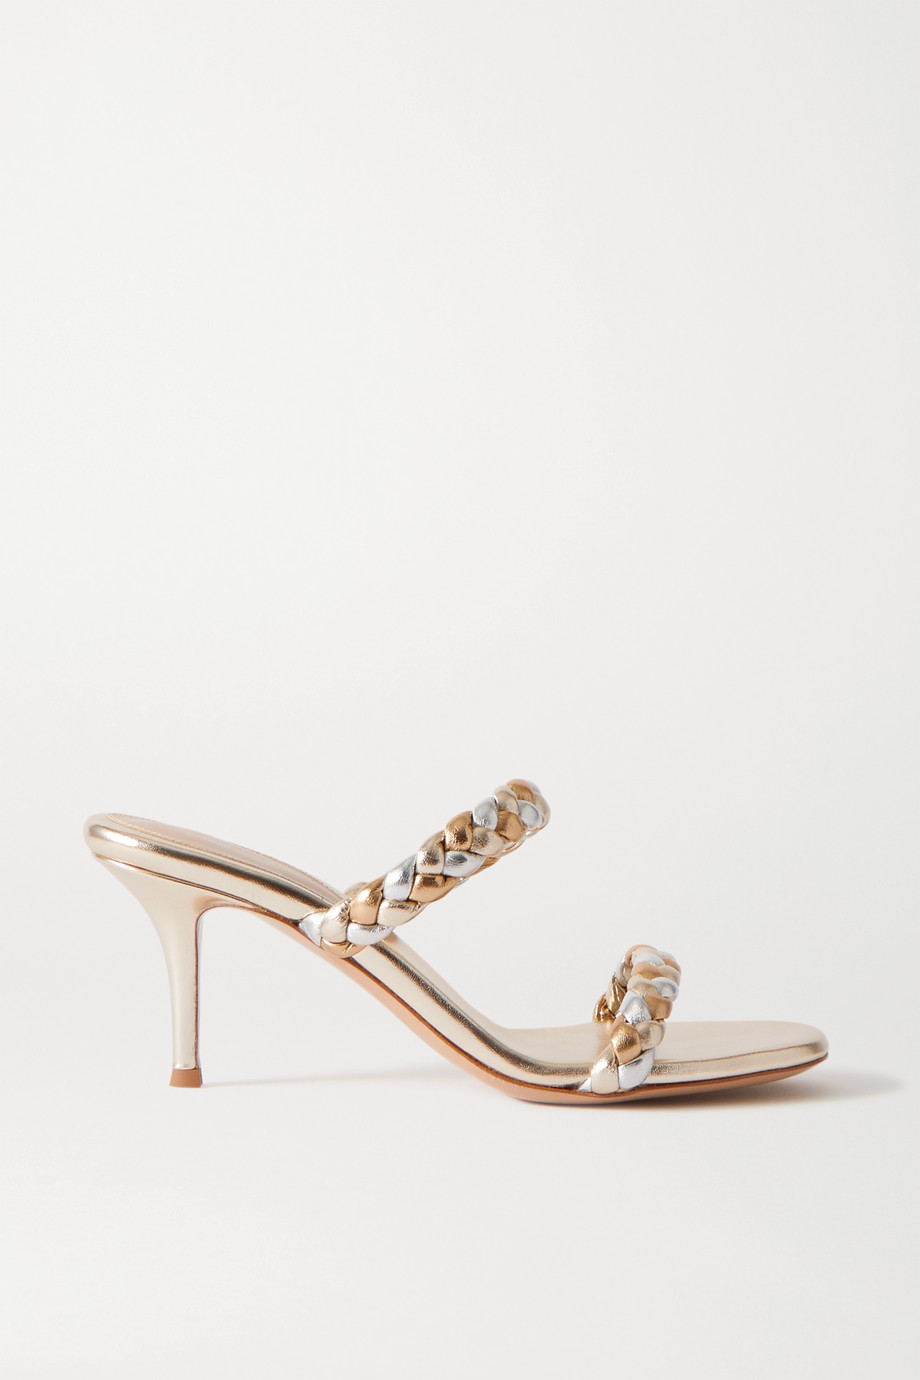 Gianvito Rossi 70 braided metallic leather sandals